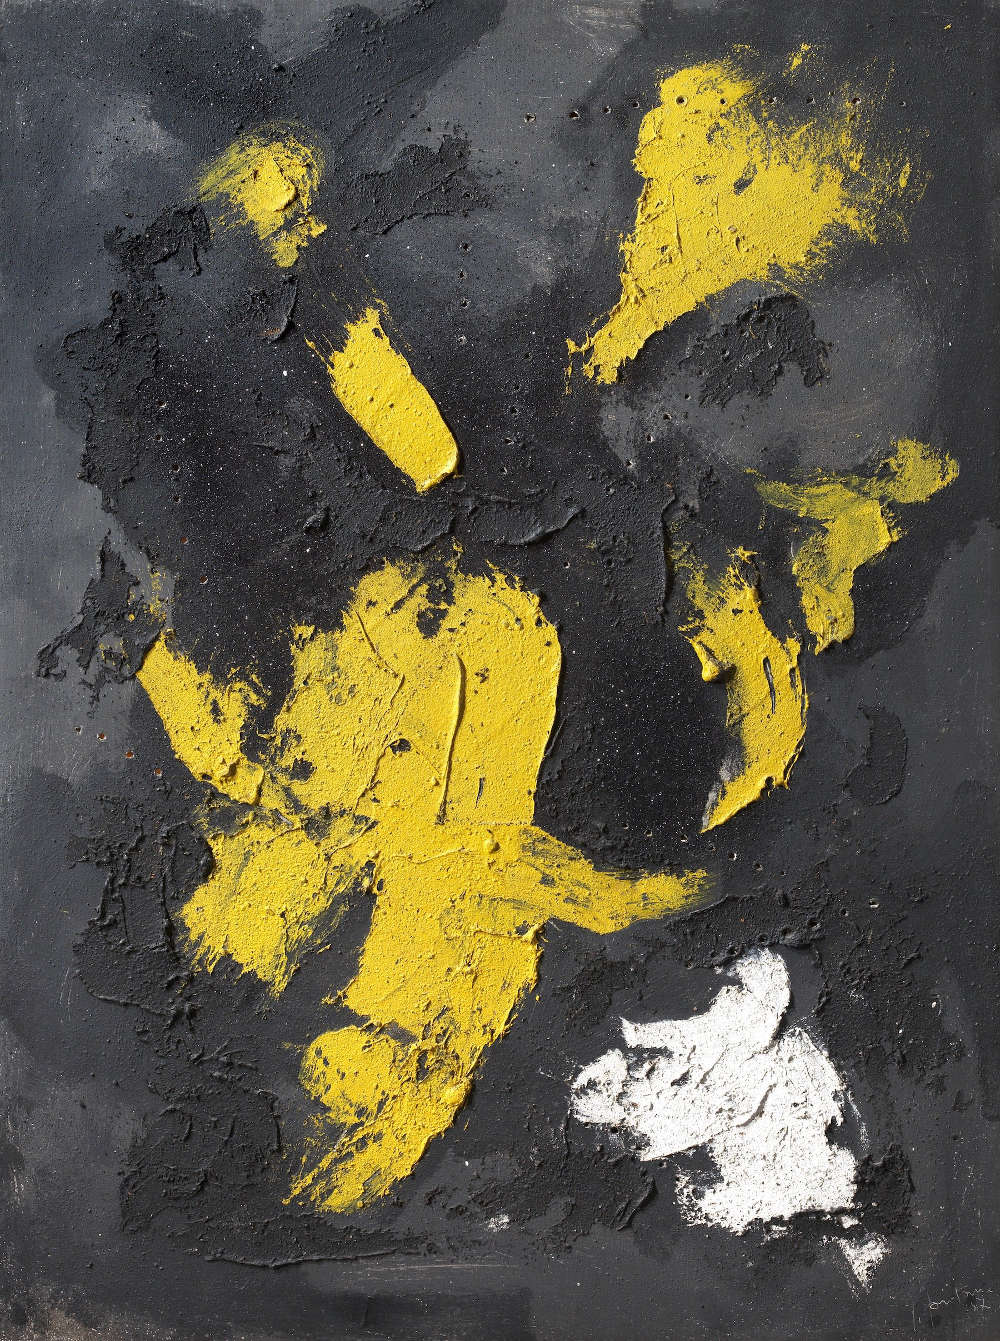 Lucio Fontana, Concetto Spaziale, 1956; oil, mixed media and sequins on canvas, 130x96 cm. Courtesy of Tornabuoni Art